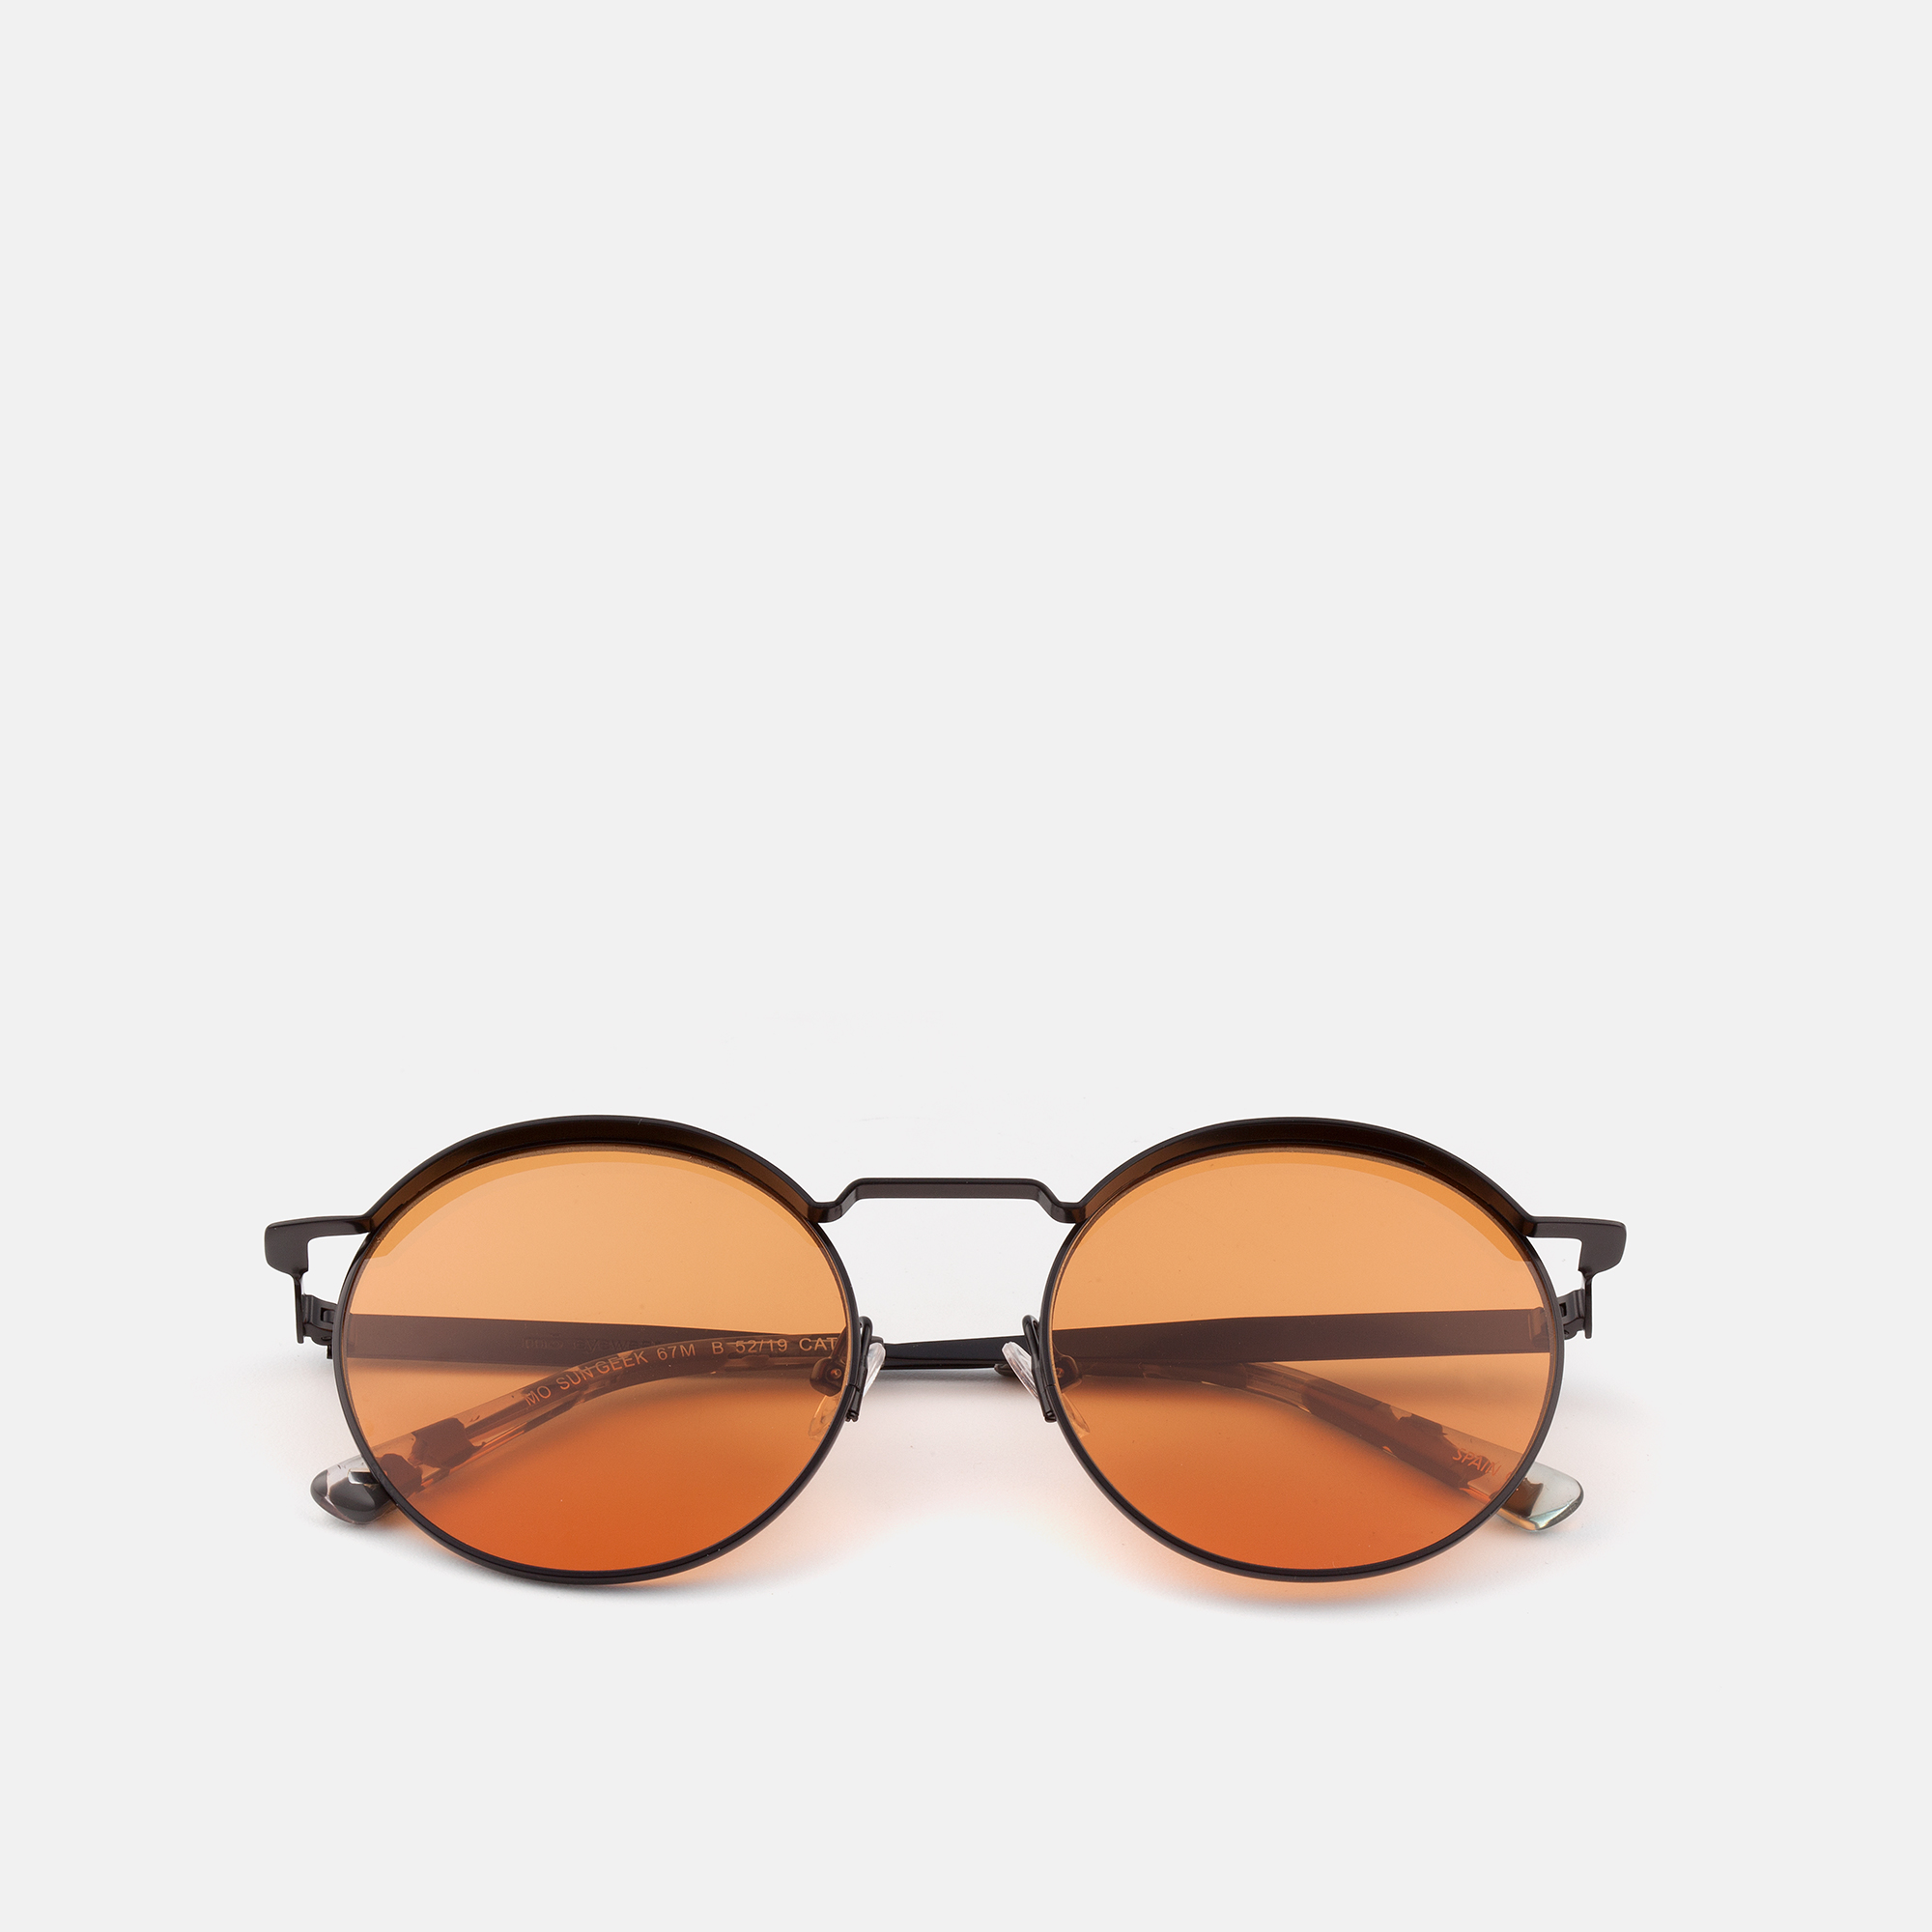 mó sun geek 67M B, black/orange, hi-res